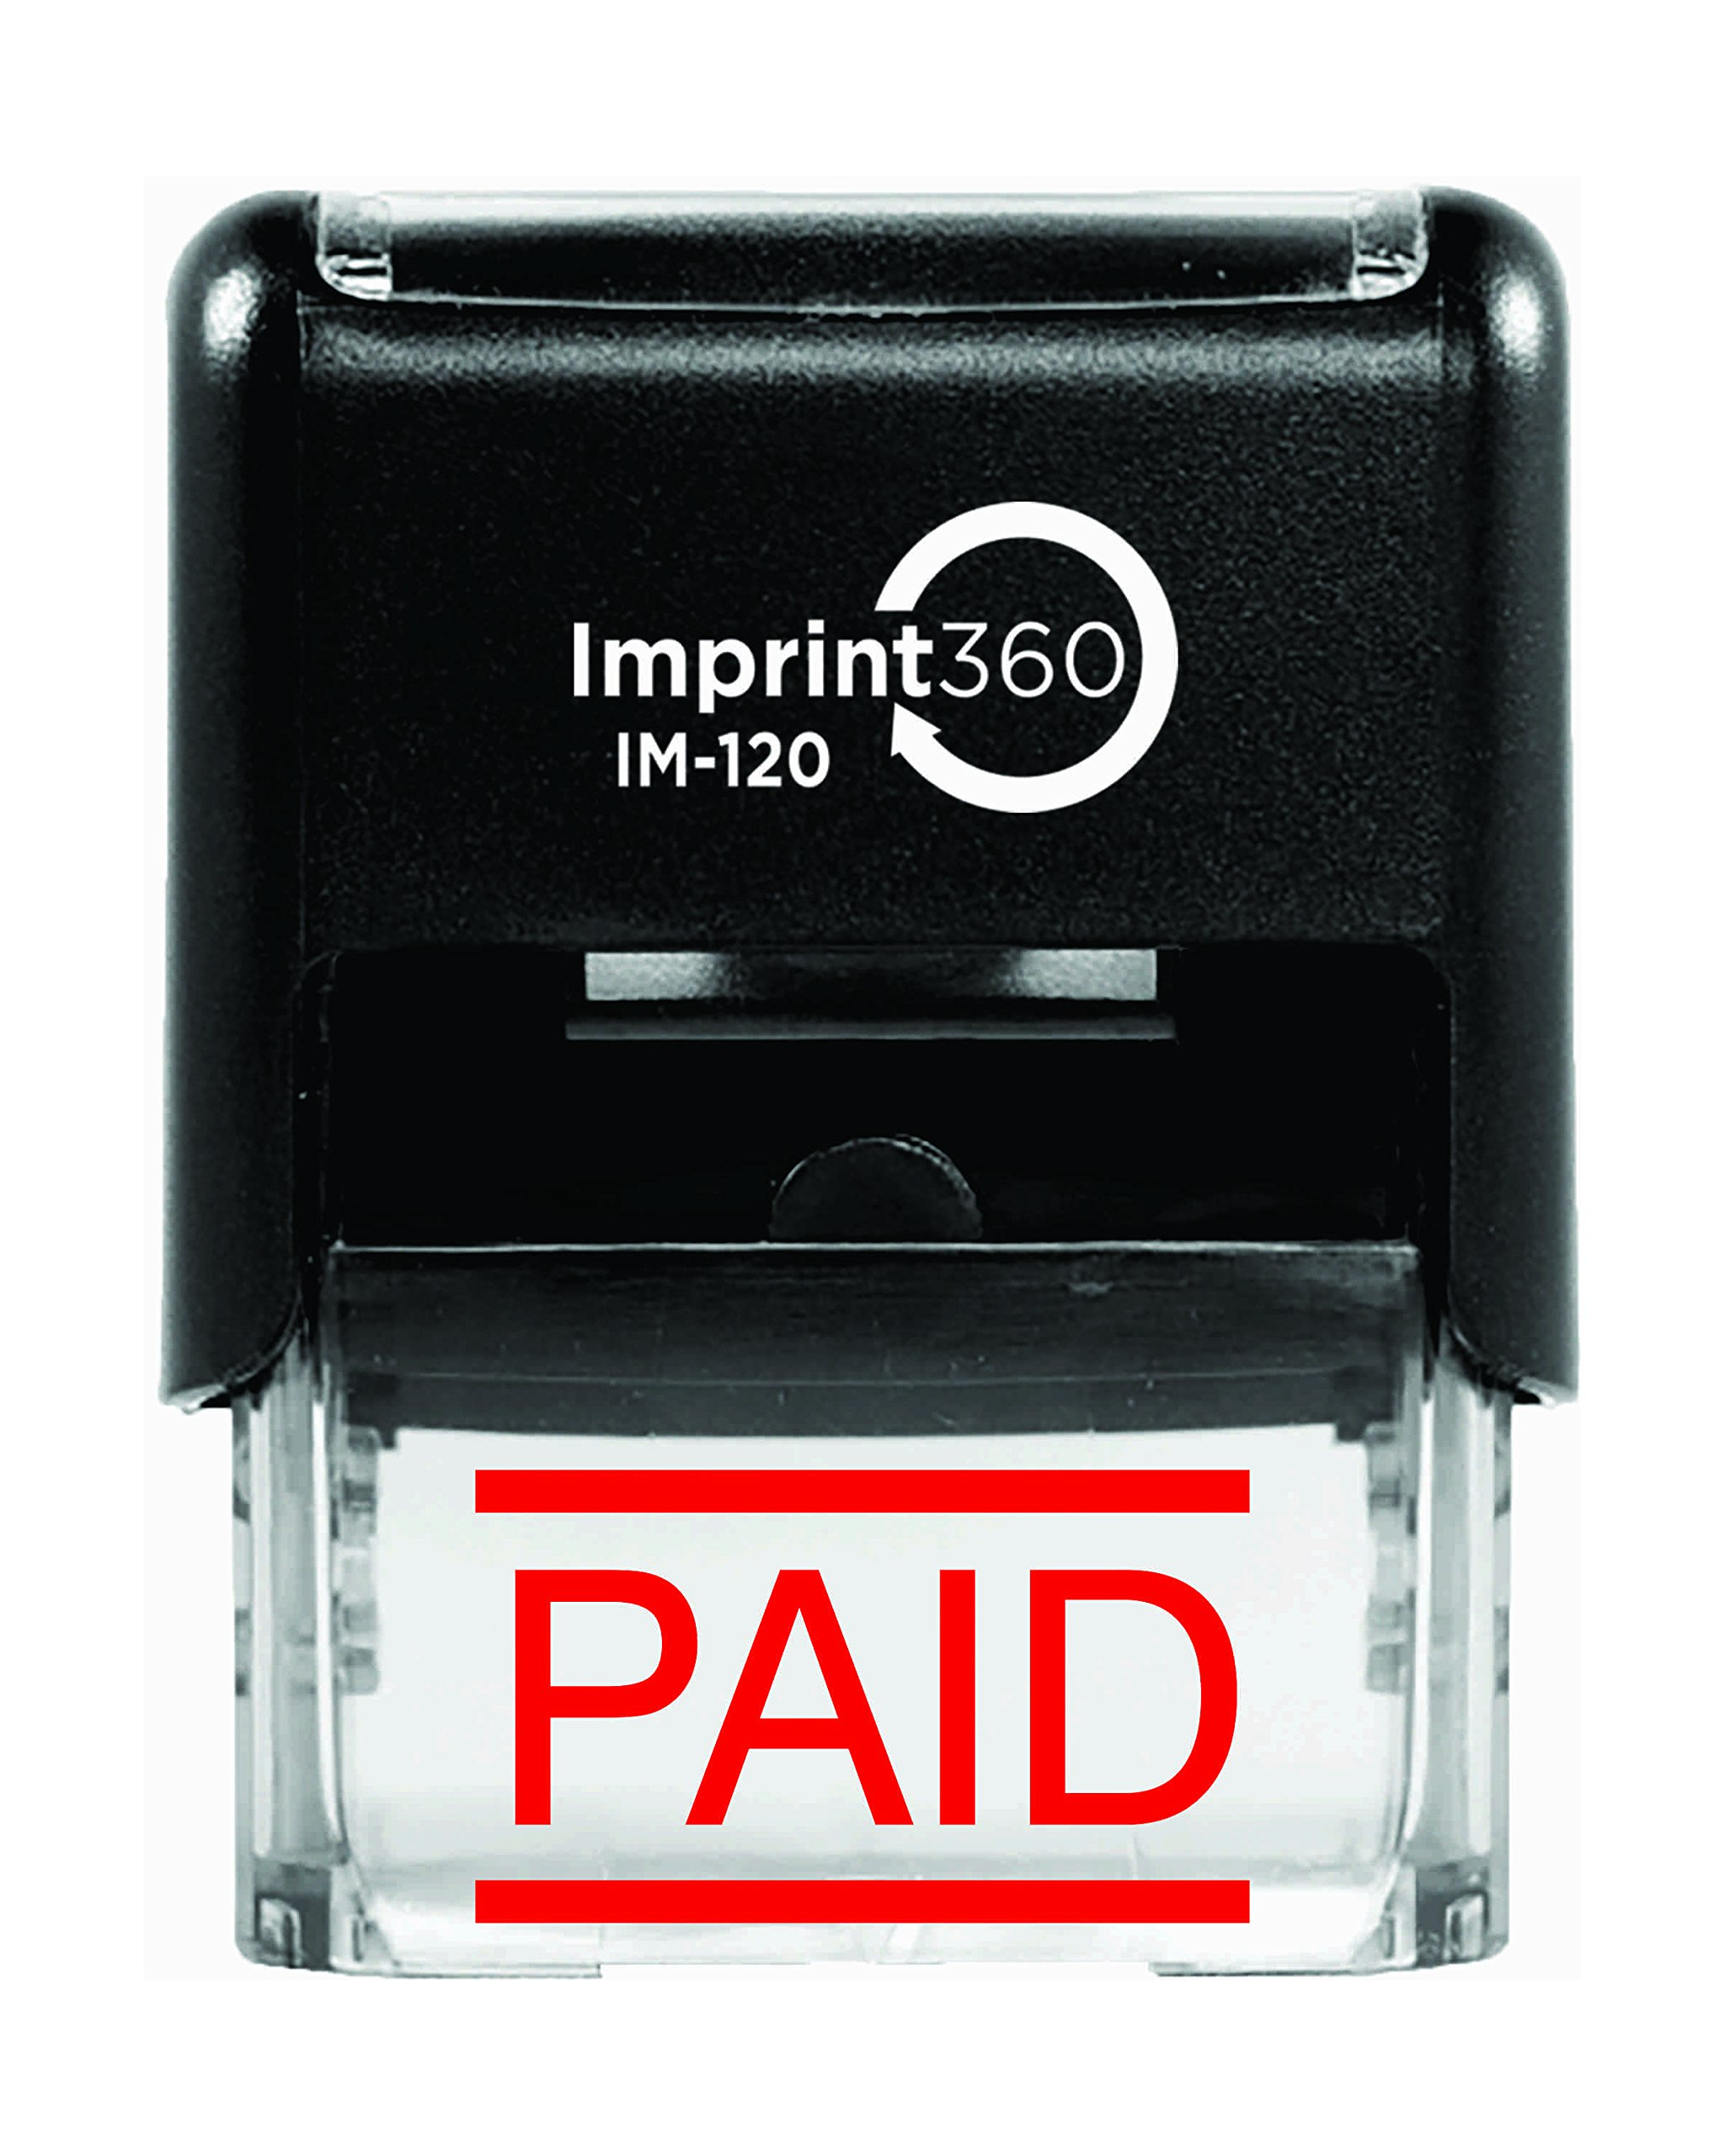 Imprint 360 AS-IMP1046 ''PAID'' Heavy Duty Commercial Quality Self Inking Rubber Stamp, Laser Engraved for Clean, Precise Imprints, 1/2'' Impression Size, 9/16'' x 1'', Red Ink